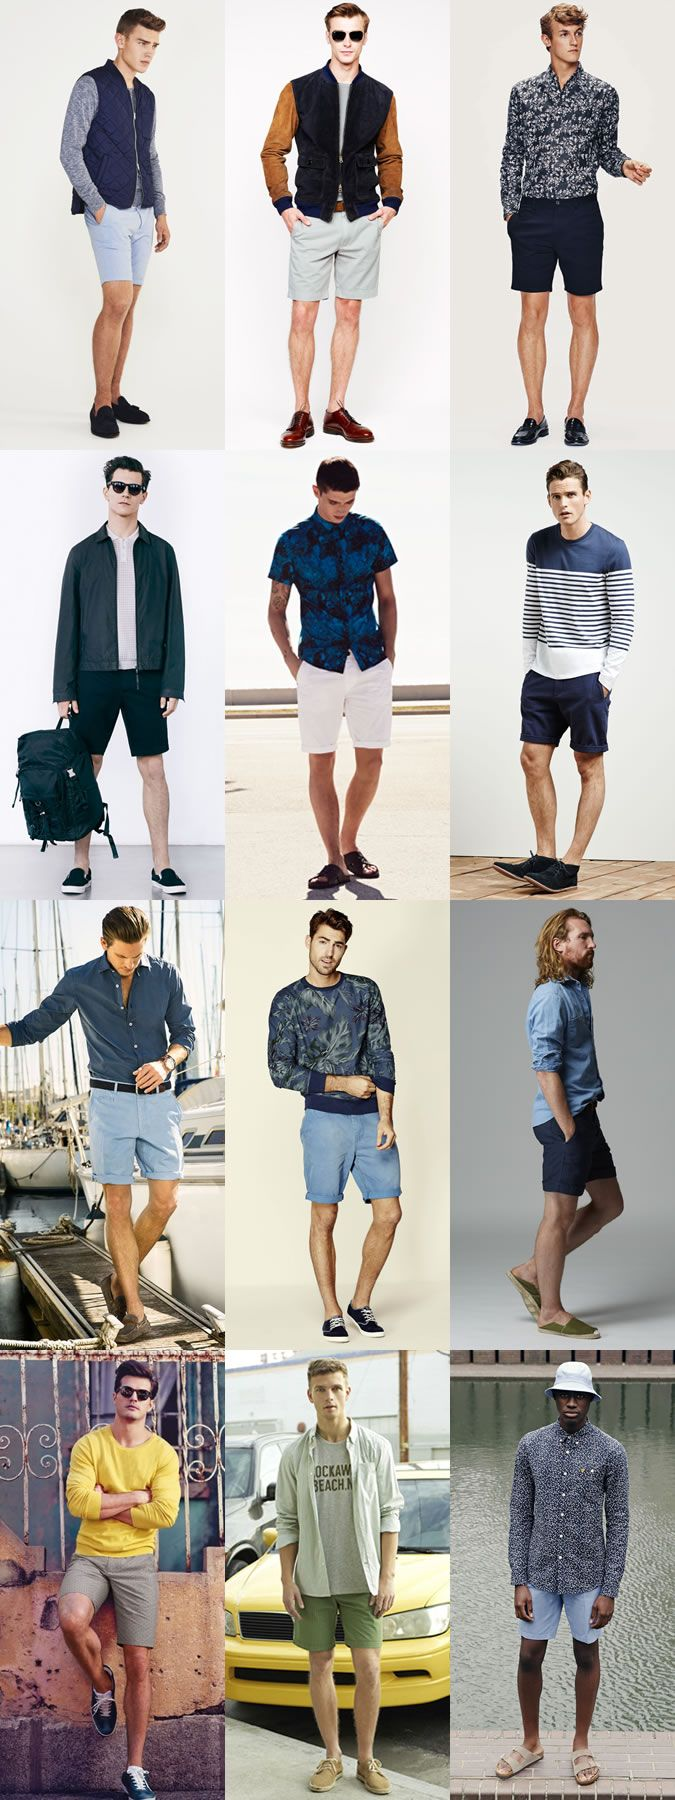 The 2015 Spring/Summer Guide To Shorts: Plain, Muted and Neutral Color Shorts Lookbook Inspiration